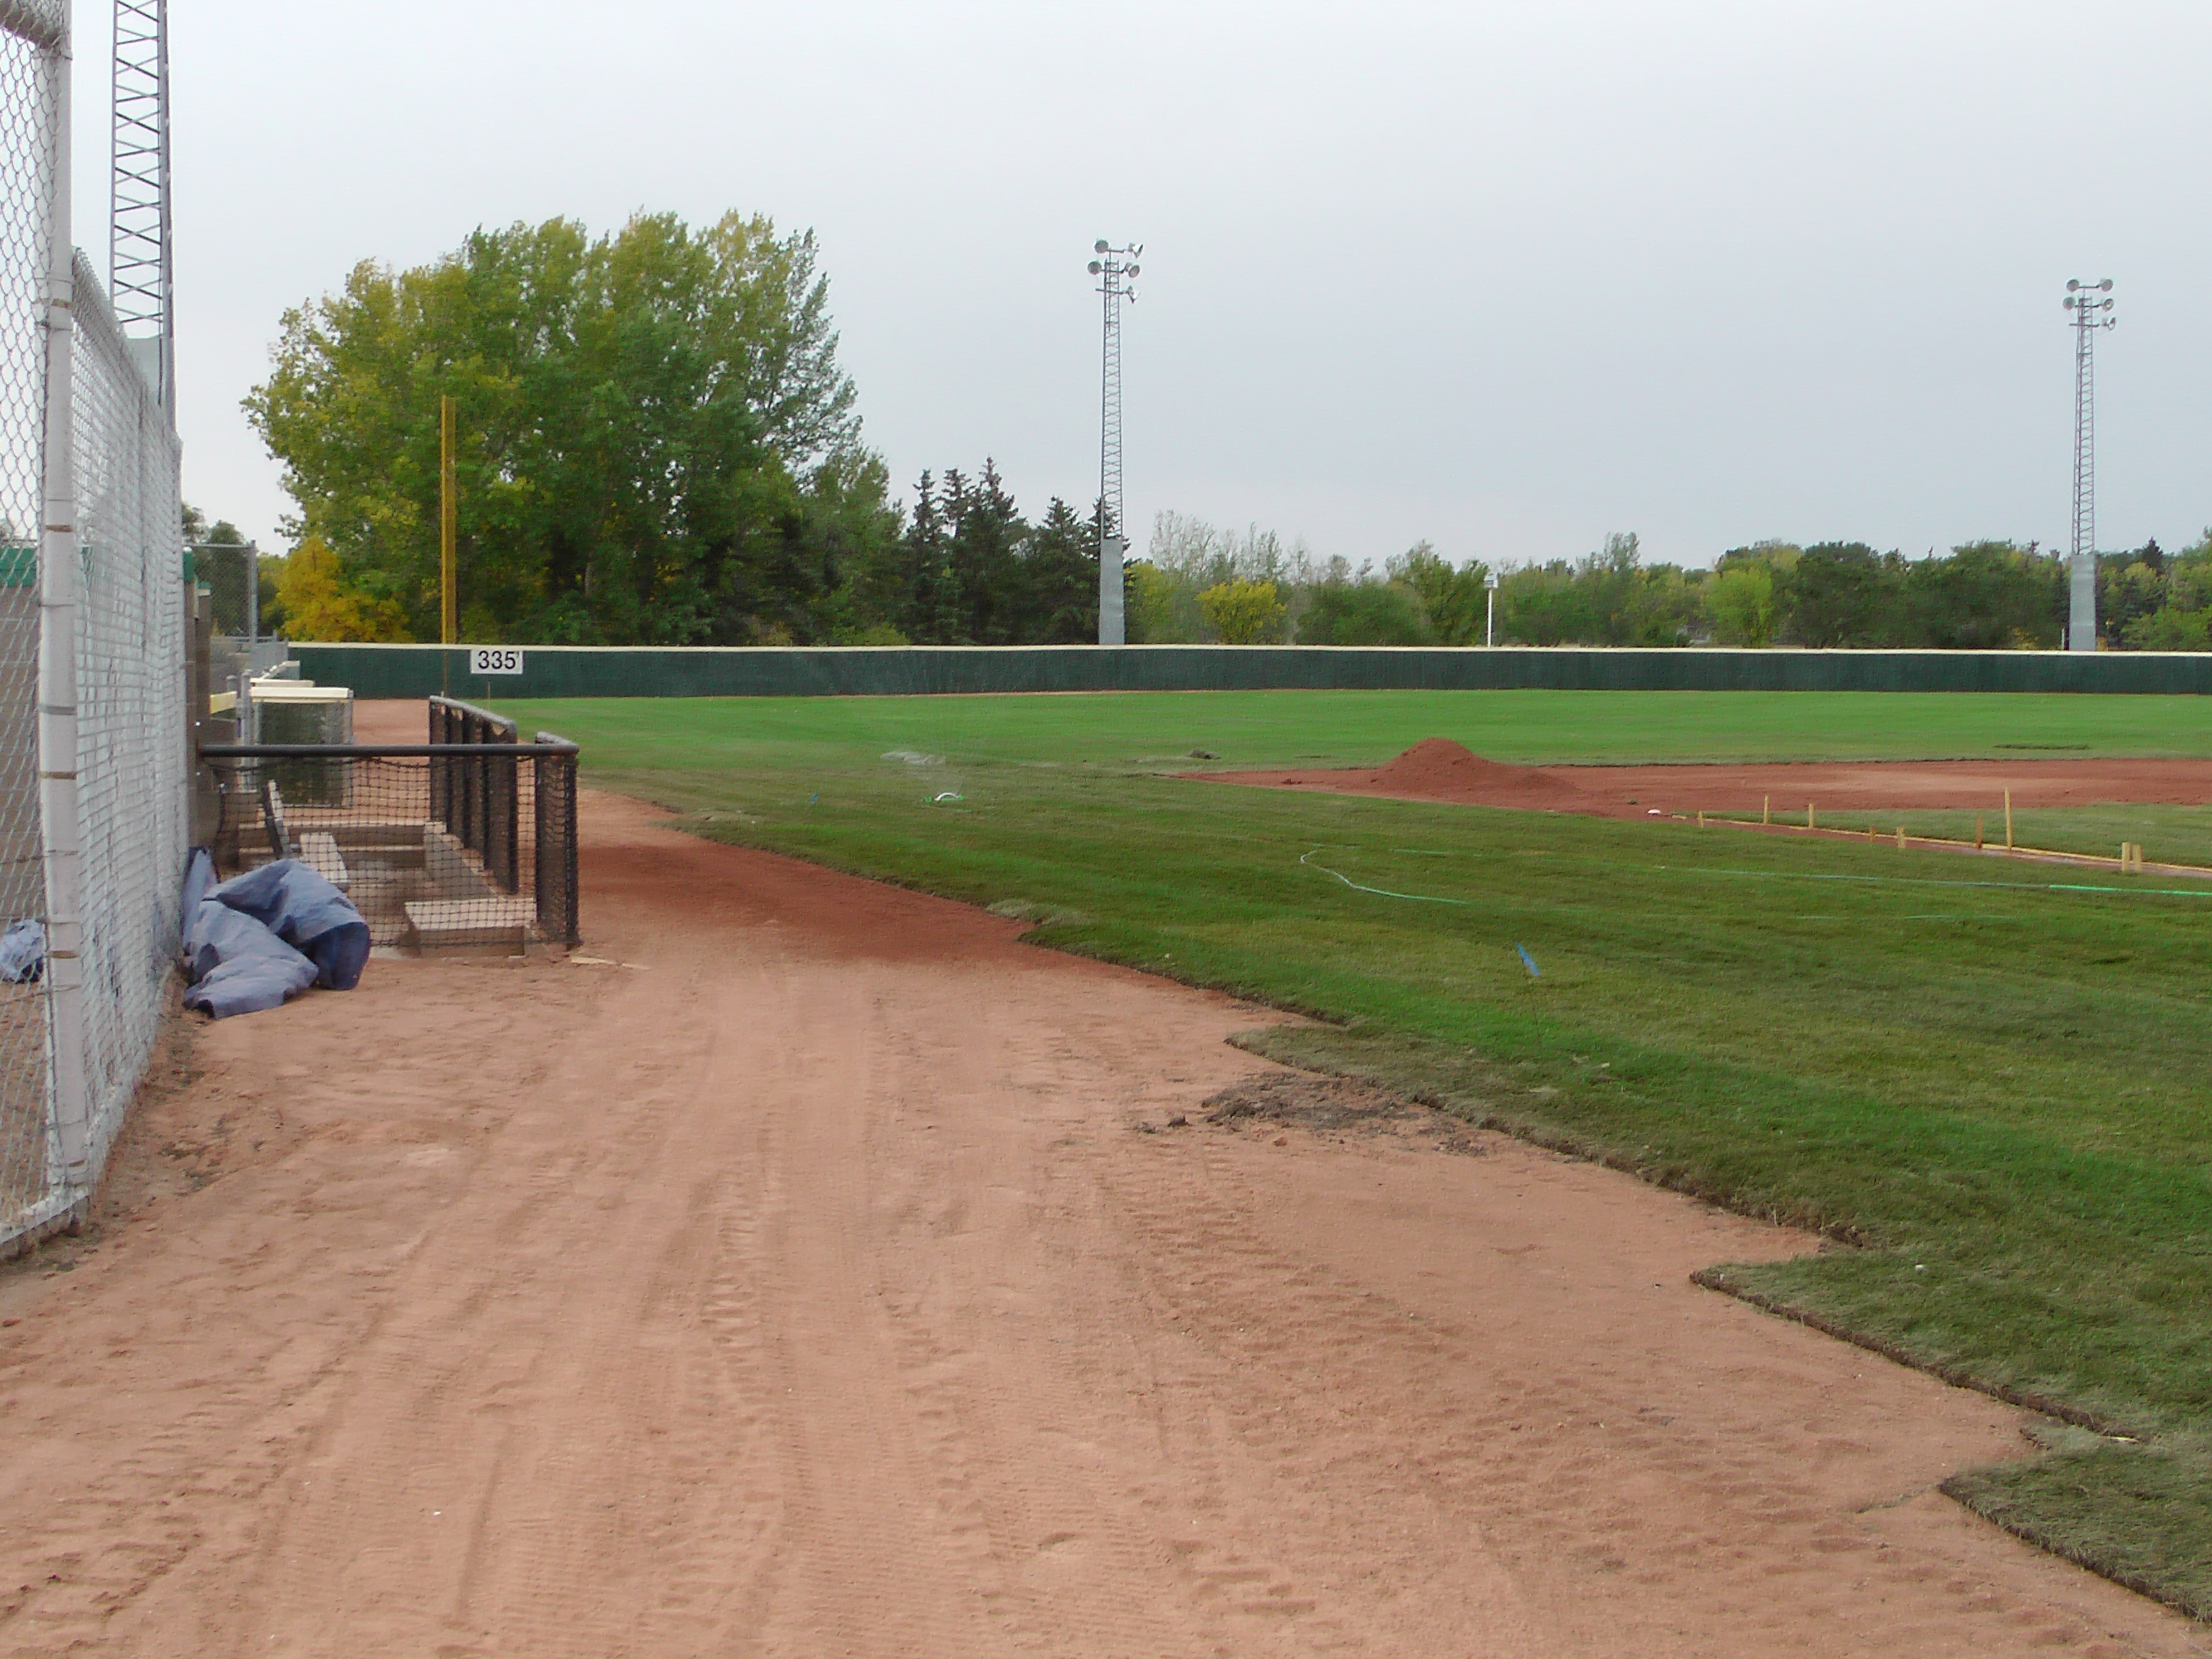 Sept 7 & 8 2018, Optimist Park Field Renovations, sod down being watered - Image 23